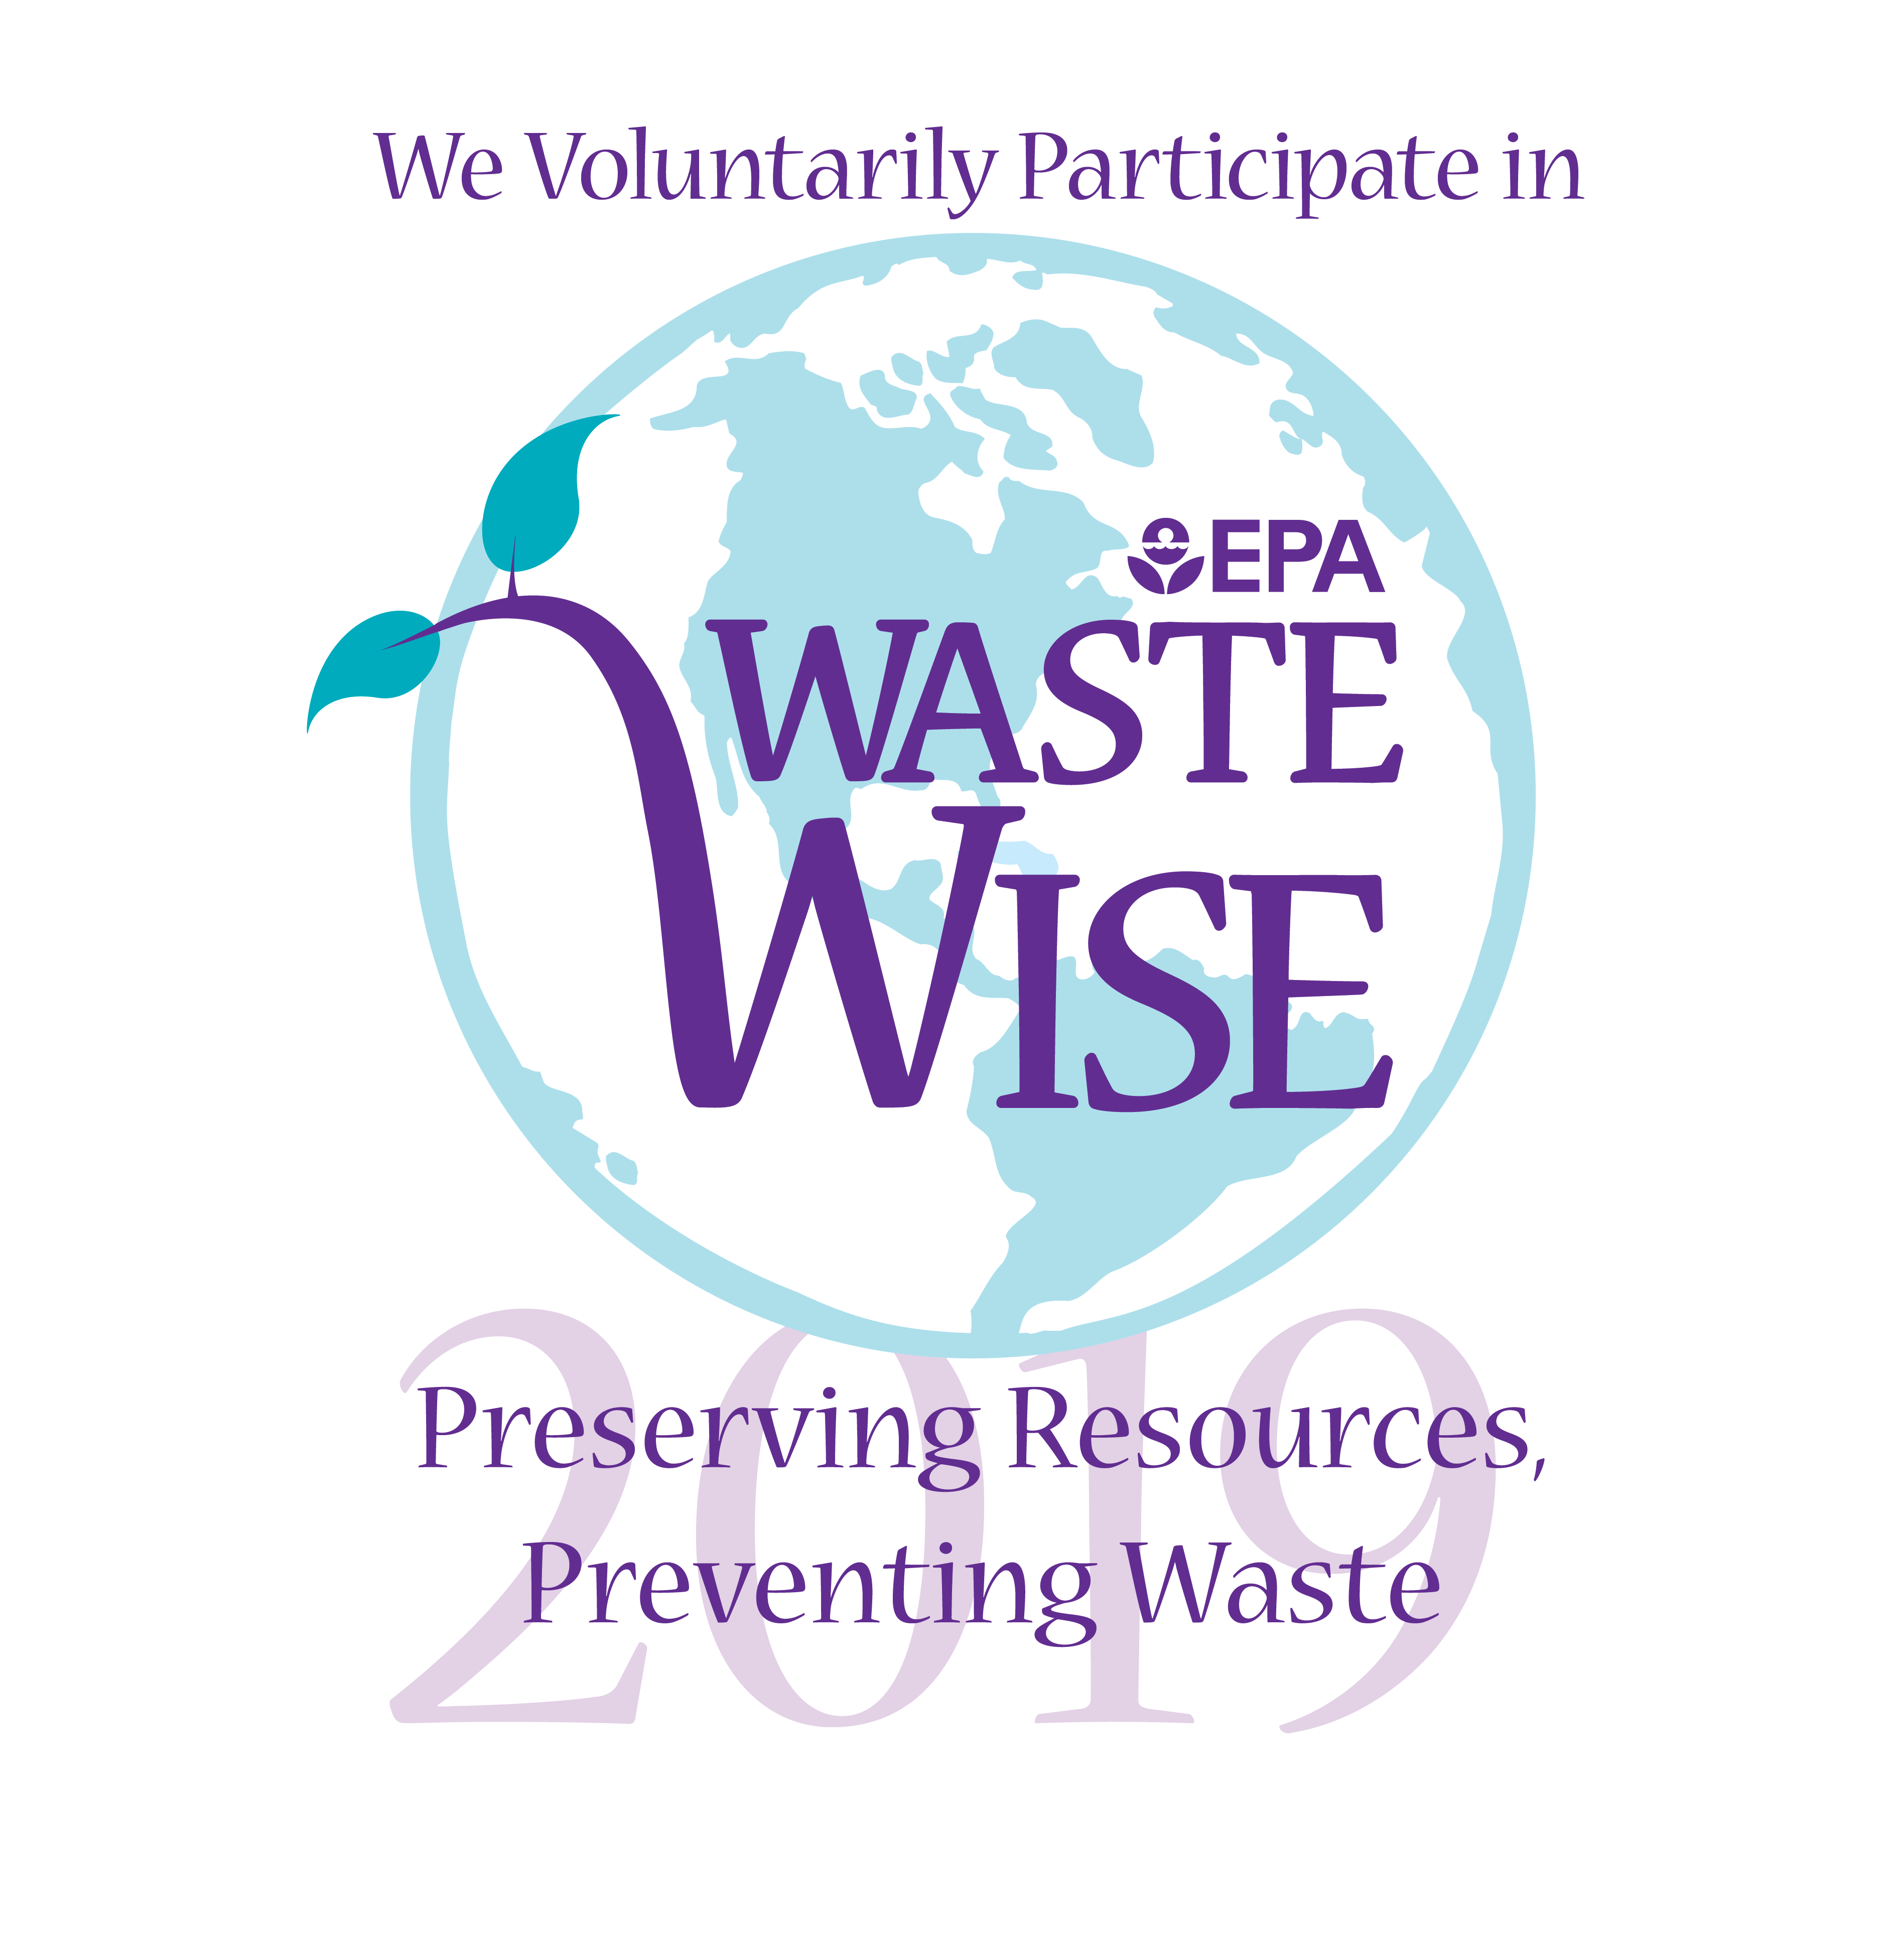 EPA WasteWise Logo, the words 'preserving resources, preventing waste' before a blue and white image of the Earth